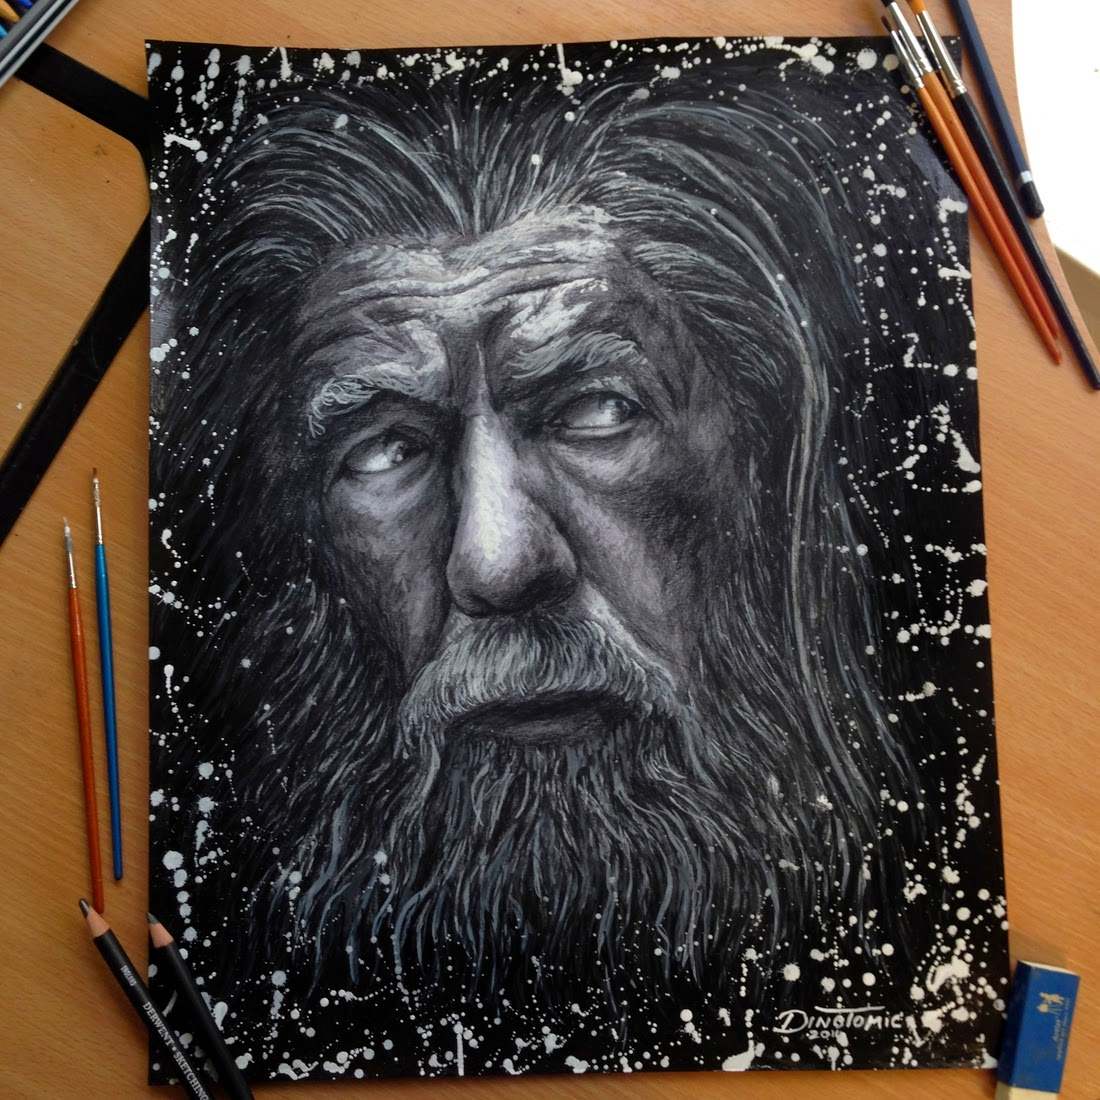 06-Gandalf-Dino-Tomic-AtomiccircuS-Mastering-Art-in-Eclectic-Drawings-www-designstack-co